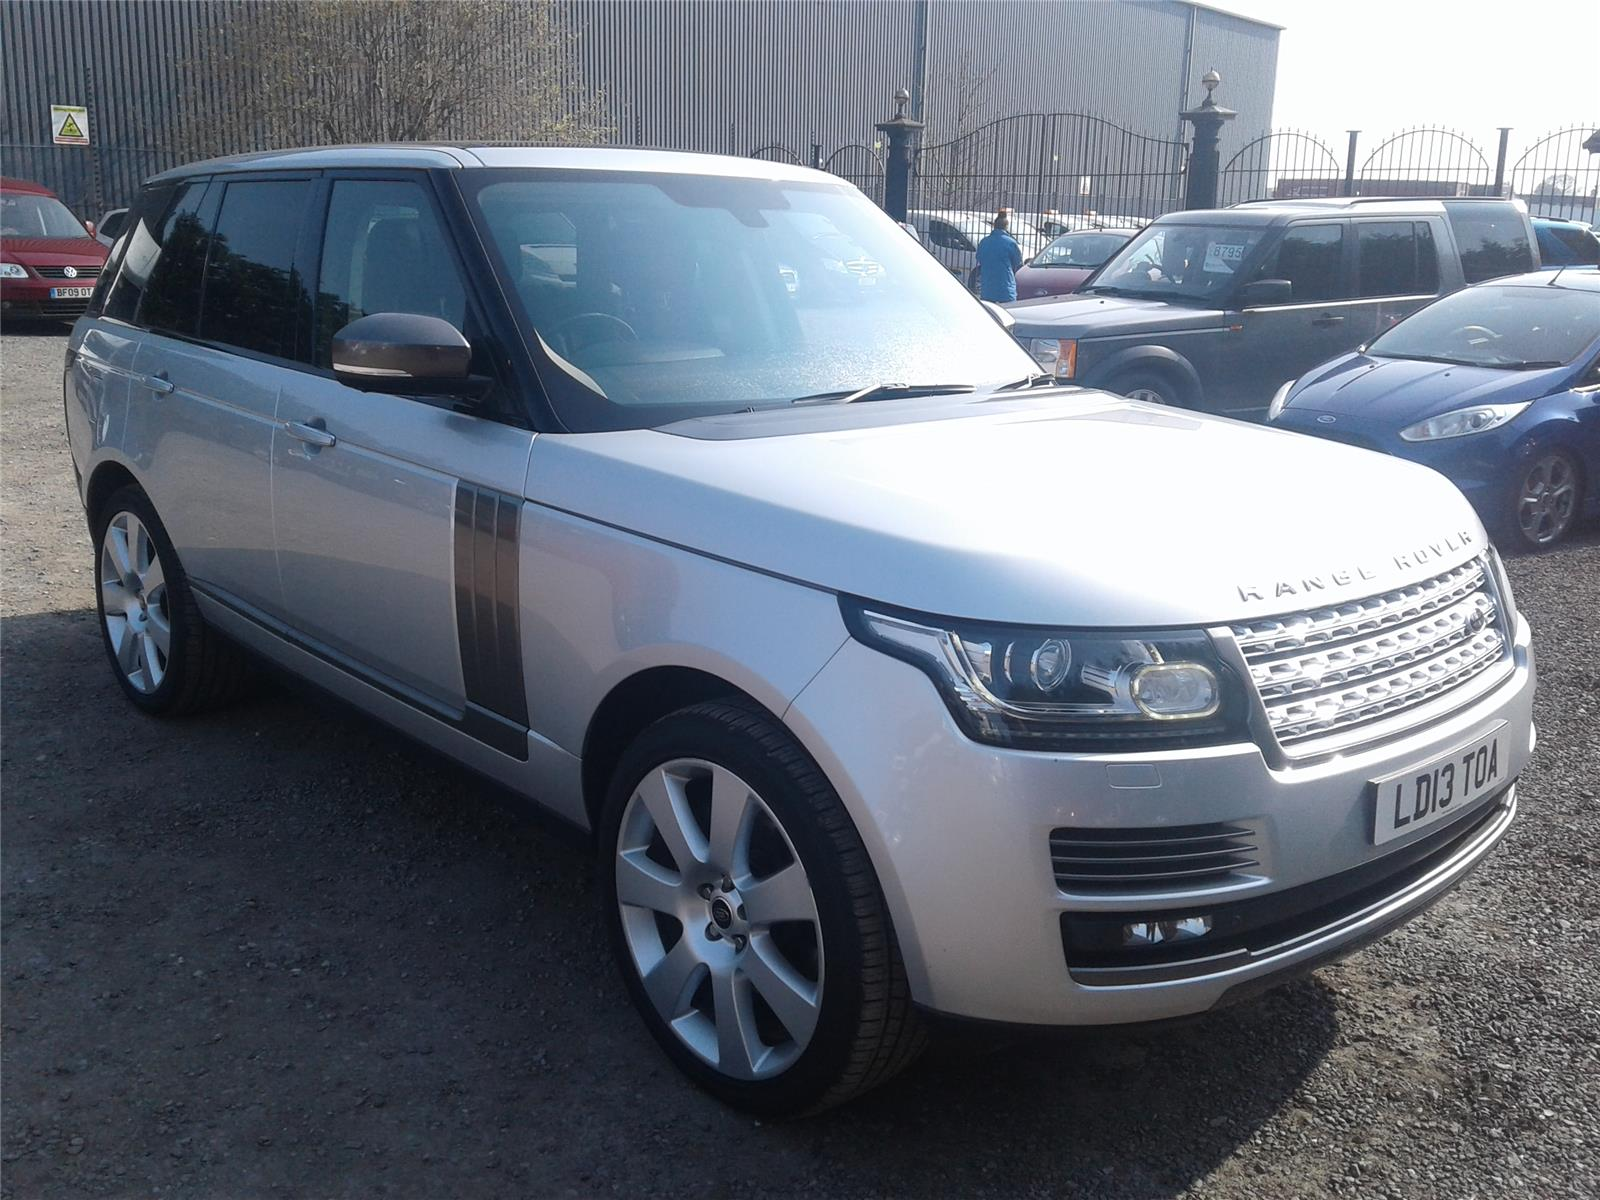 2013 Land Rover Range Rover Autobiography SDV8 4WD 4367 Diesel Automatic 8 Speed 5 Door Estate